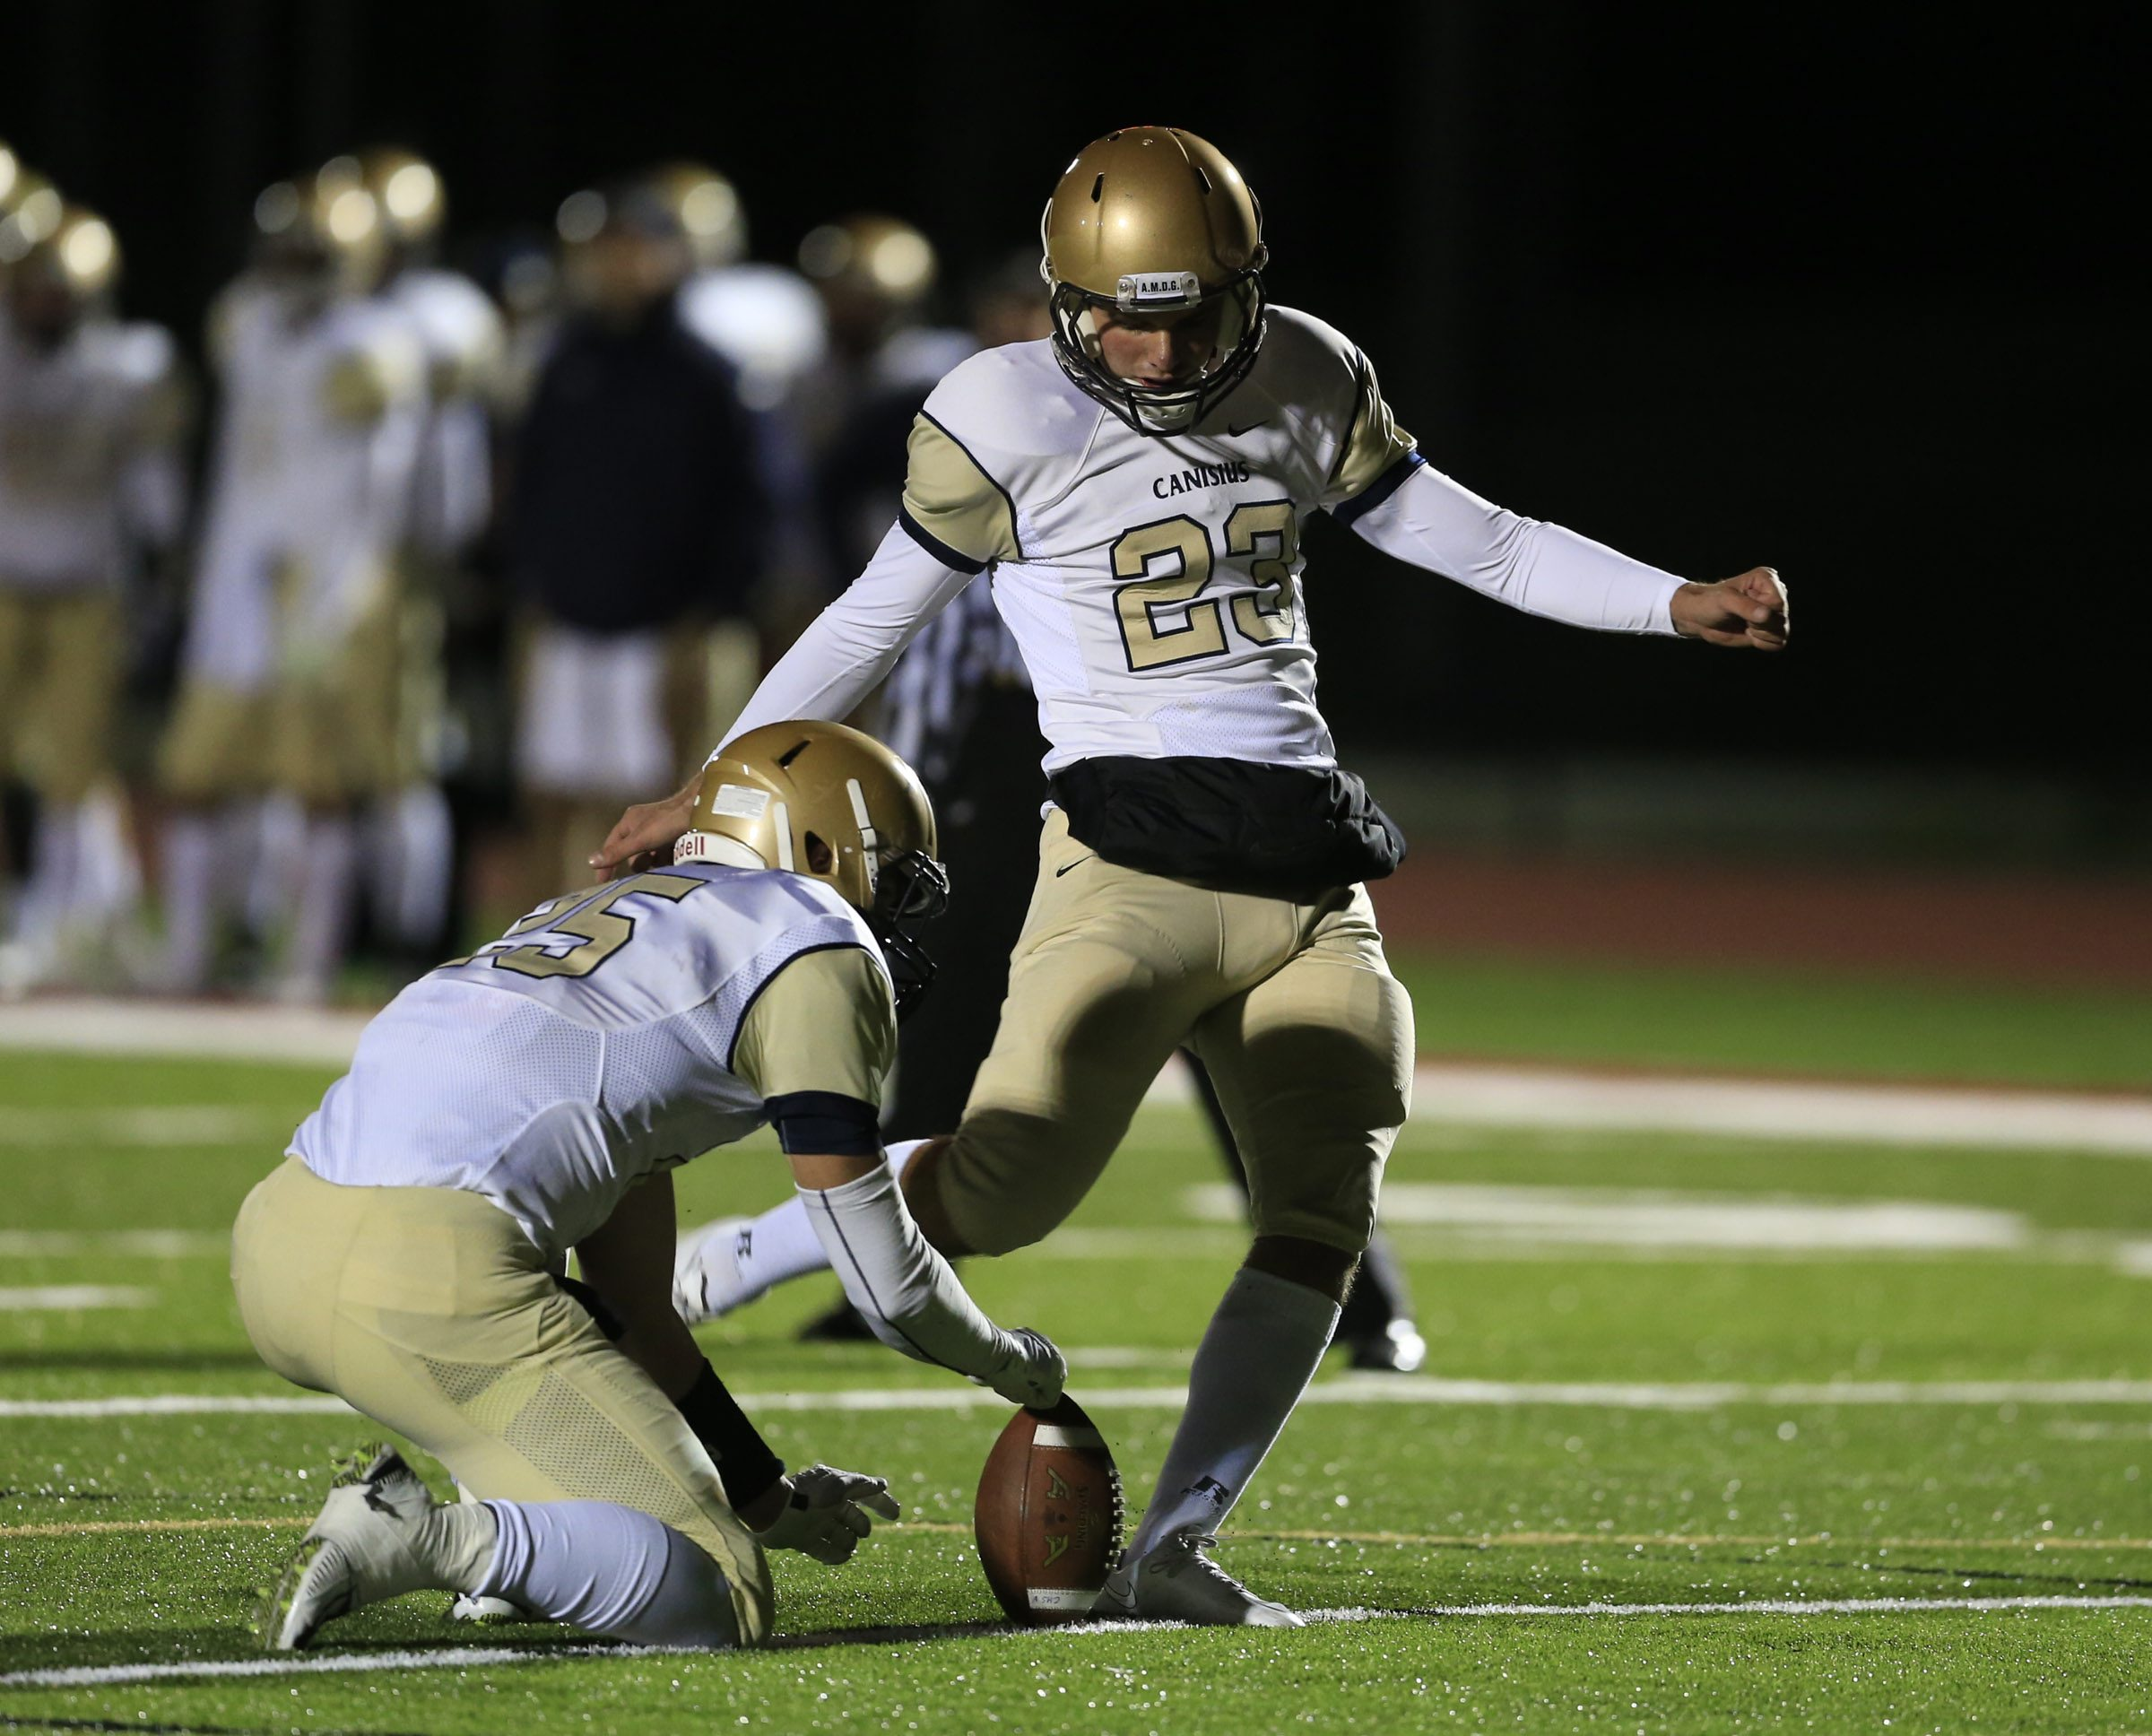 Canisius kicker Blake Haubeil is the top-ranked kicking prospect in the country, according to 247 Sports.  (Harry Scull Jr./Buffalo News)